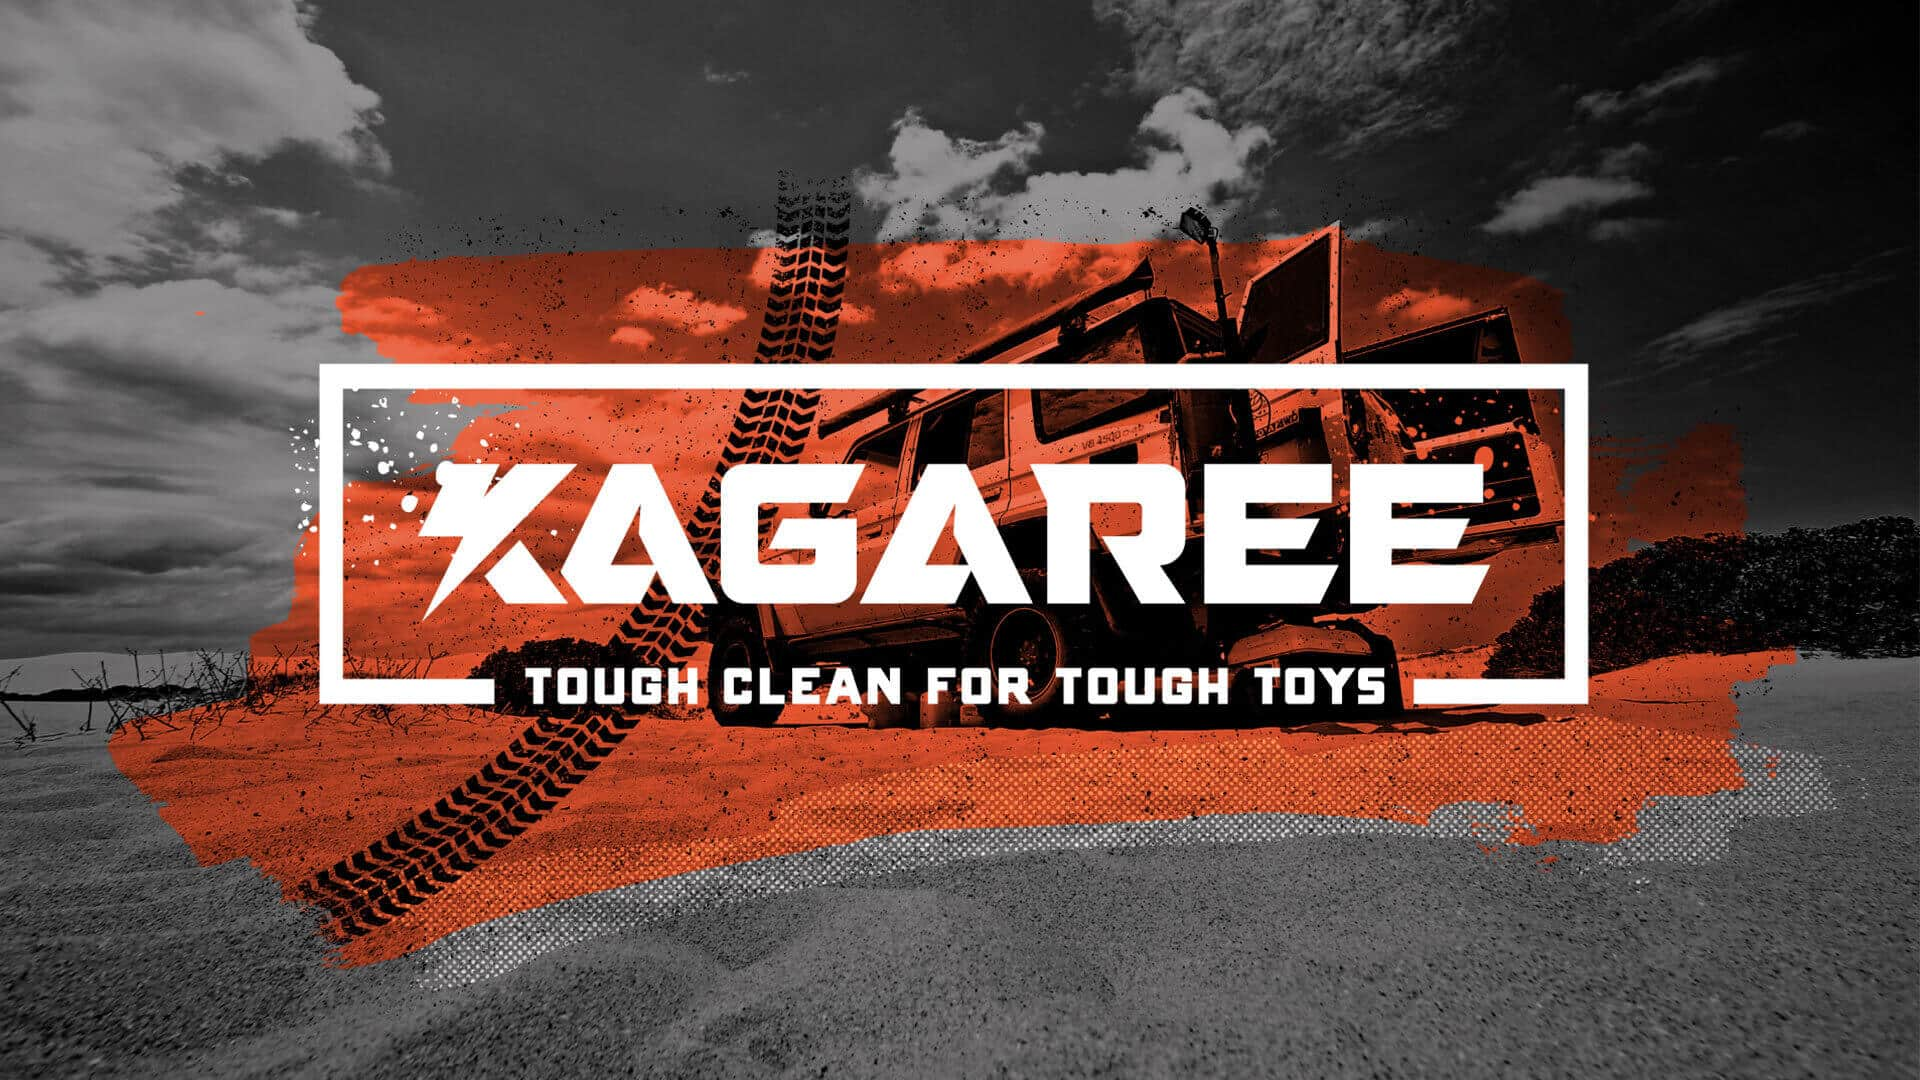 Kagaree - Brand design